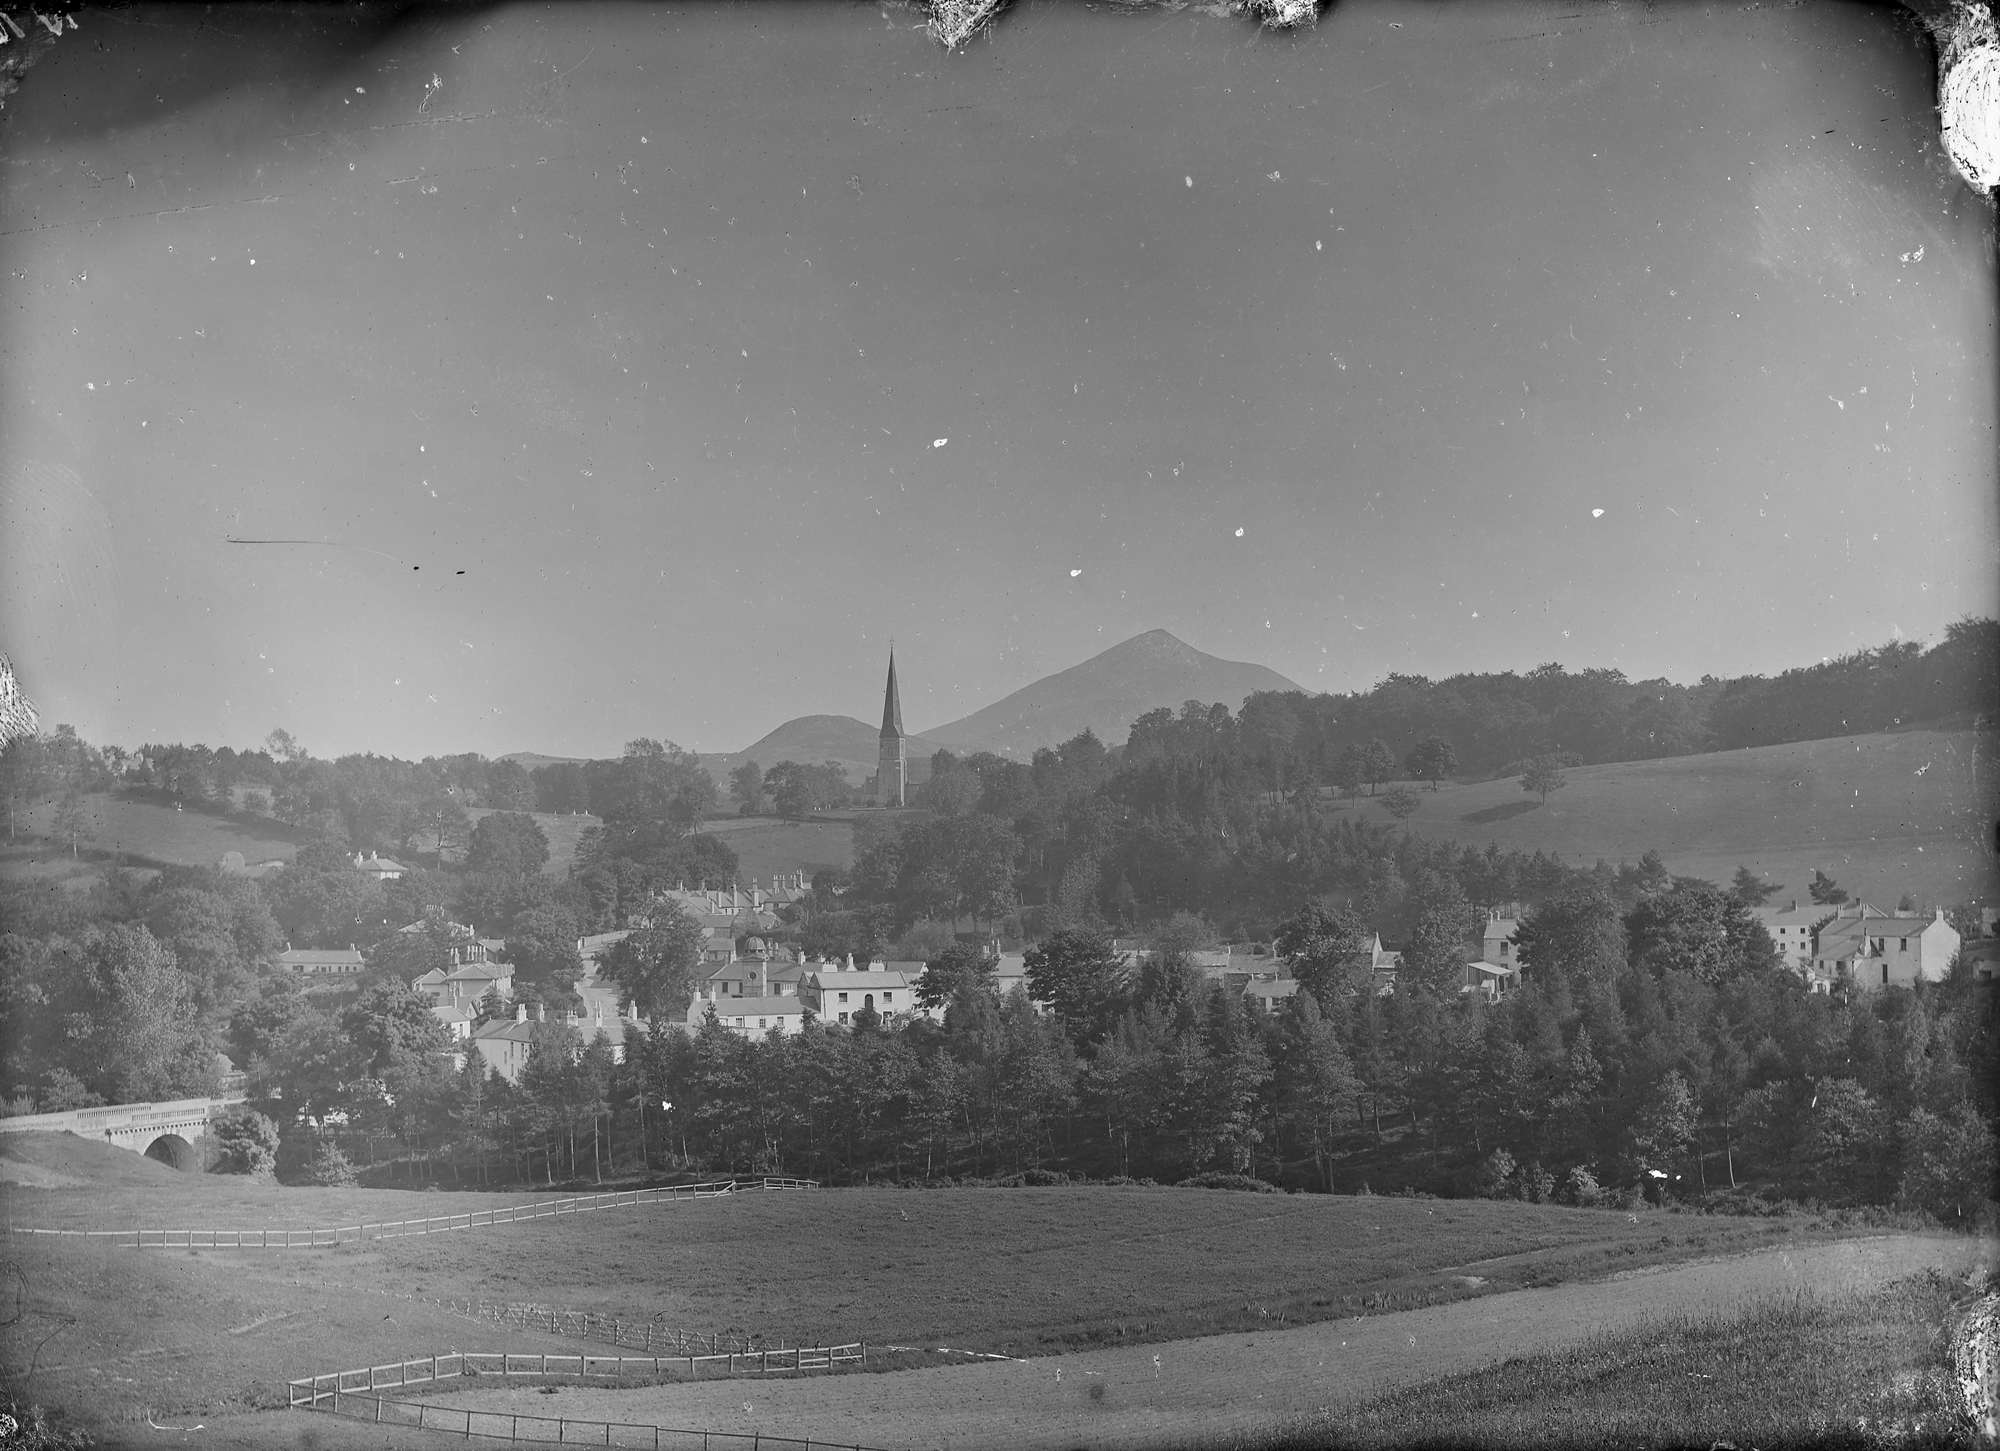 Town or village with church tower visible in the distance... is Enniskerry, Co Wicklow